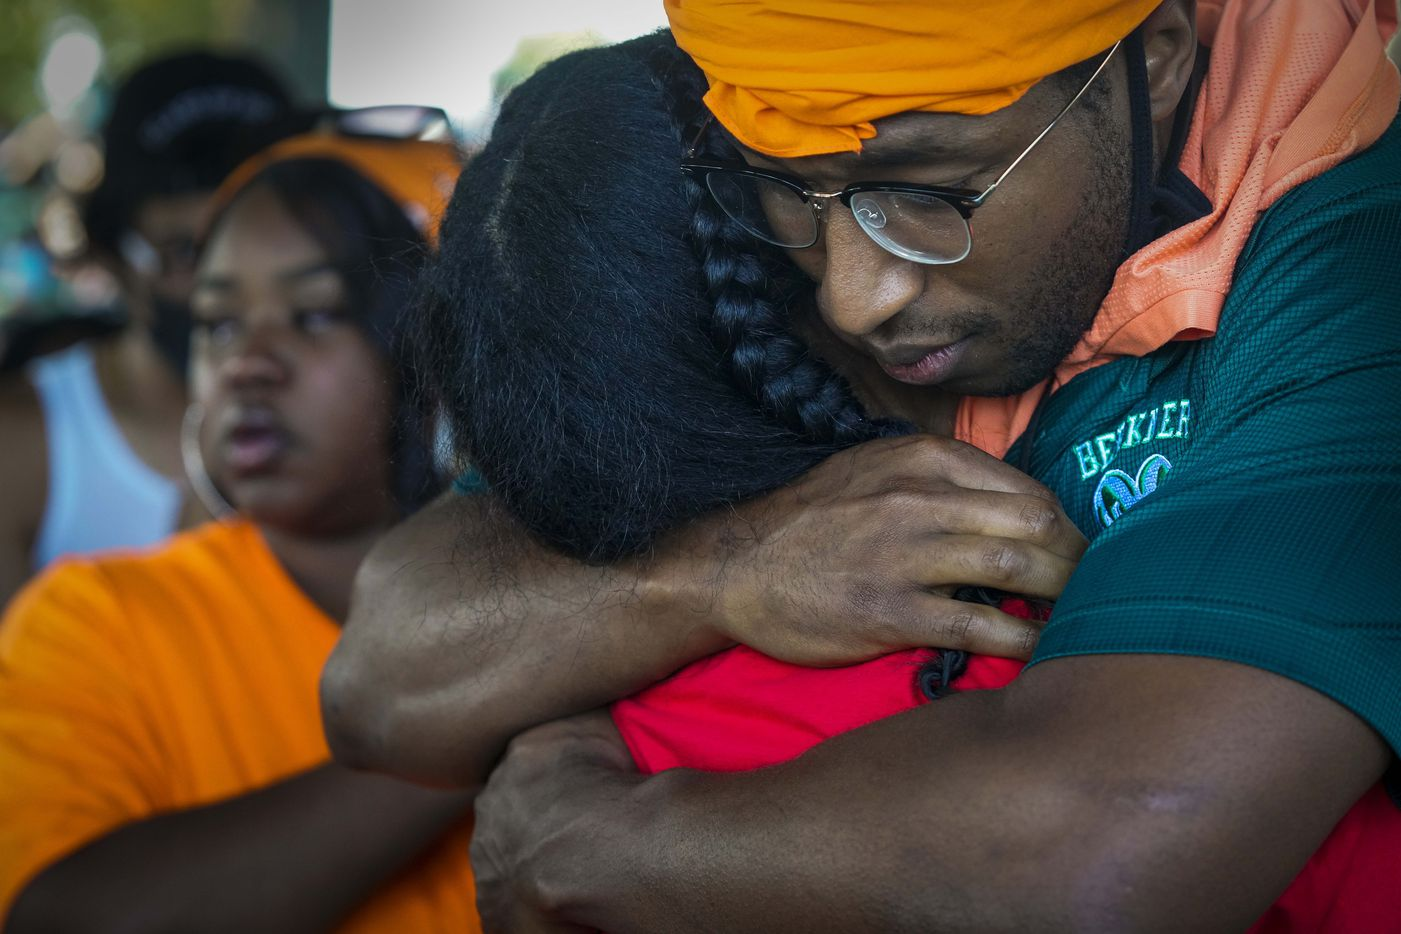 Teacher Andre Watson (right) hugs a speaker during a protest organized by Berkner High School students at Berner Park as protests continue after the death of George Floyd on Wednesday, June 3, 2020, in Richardson.